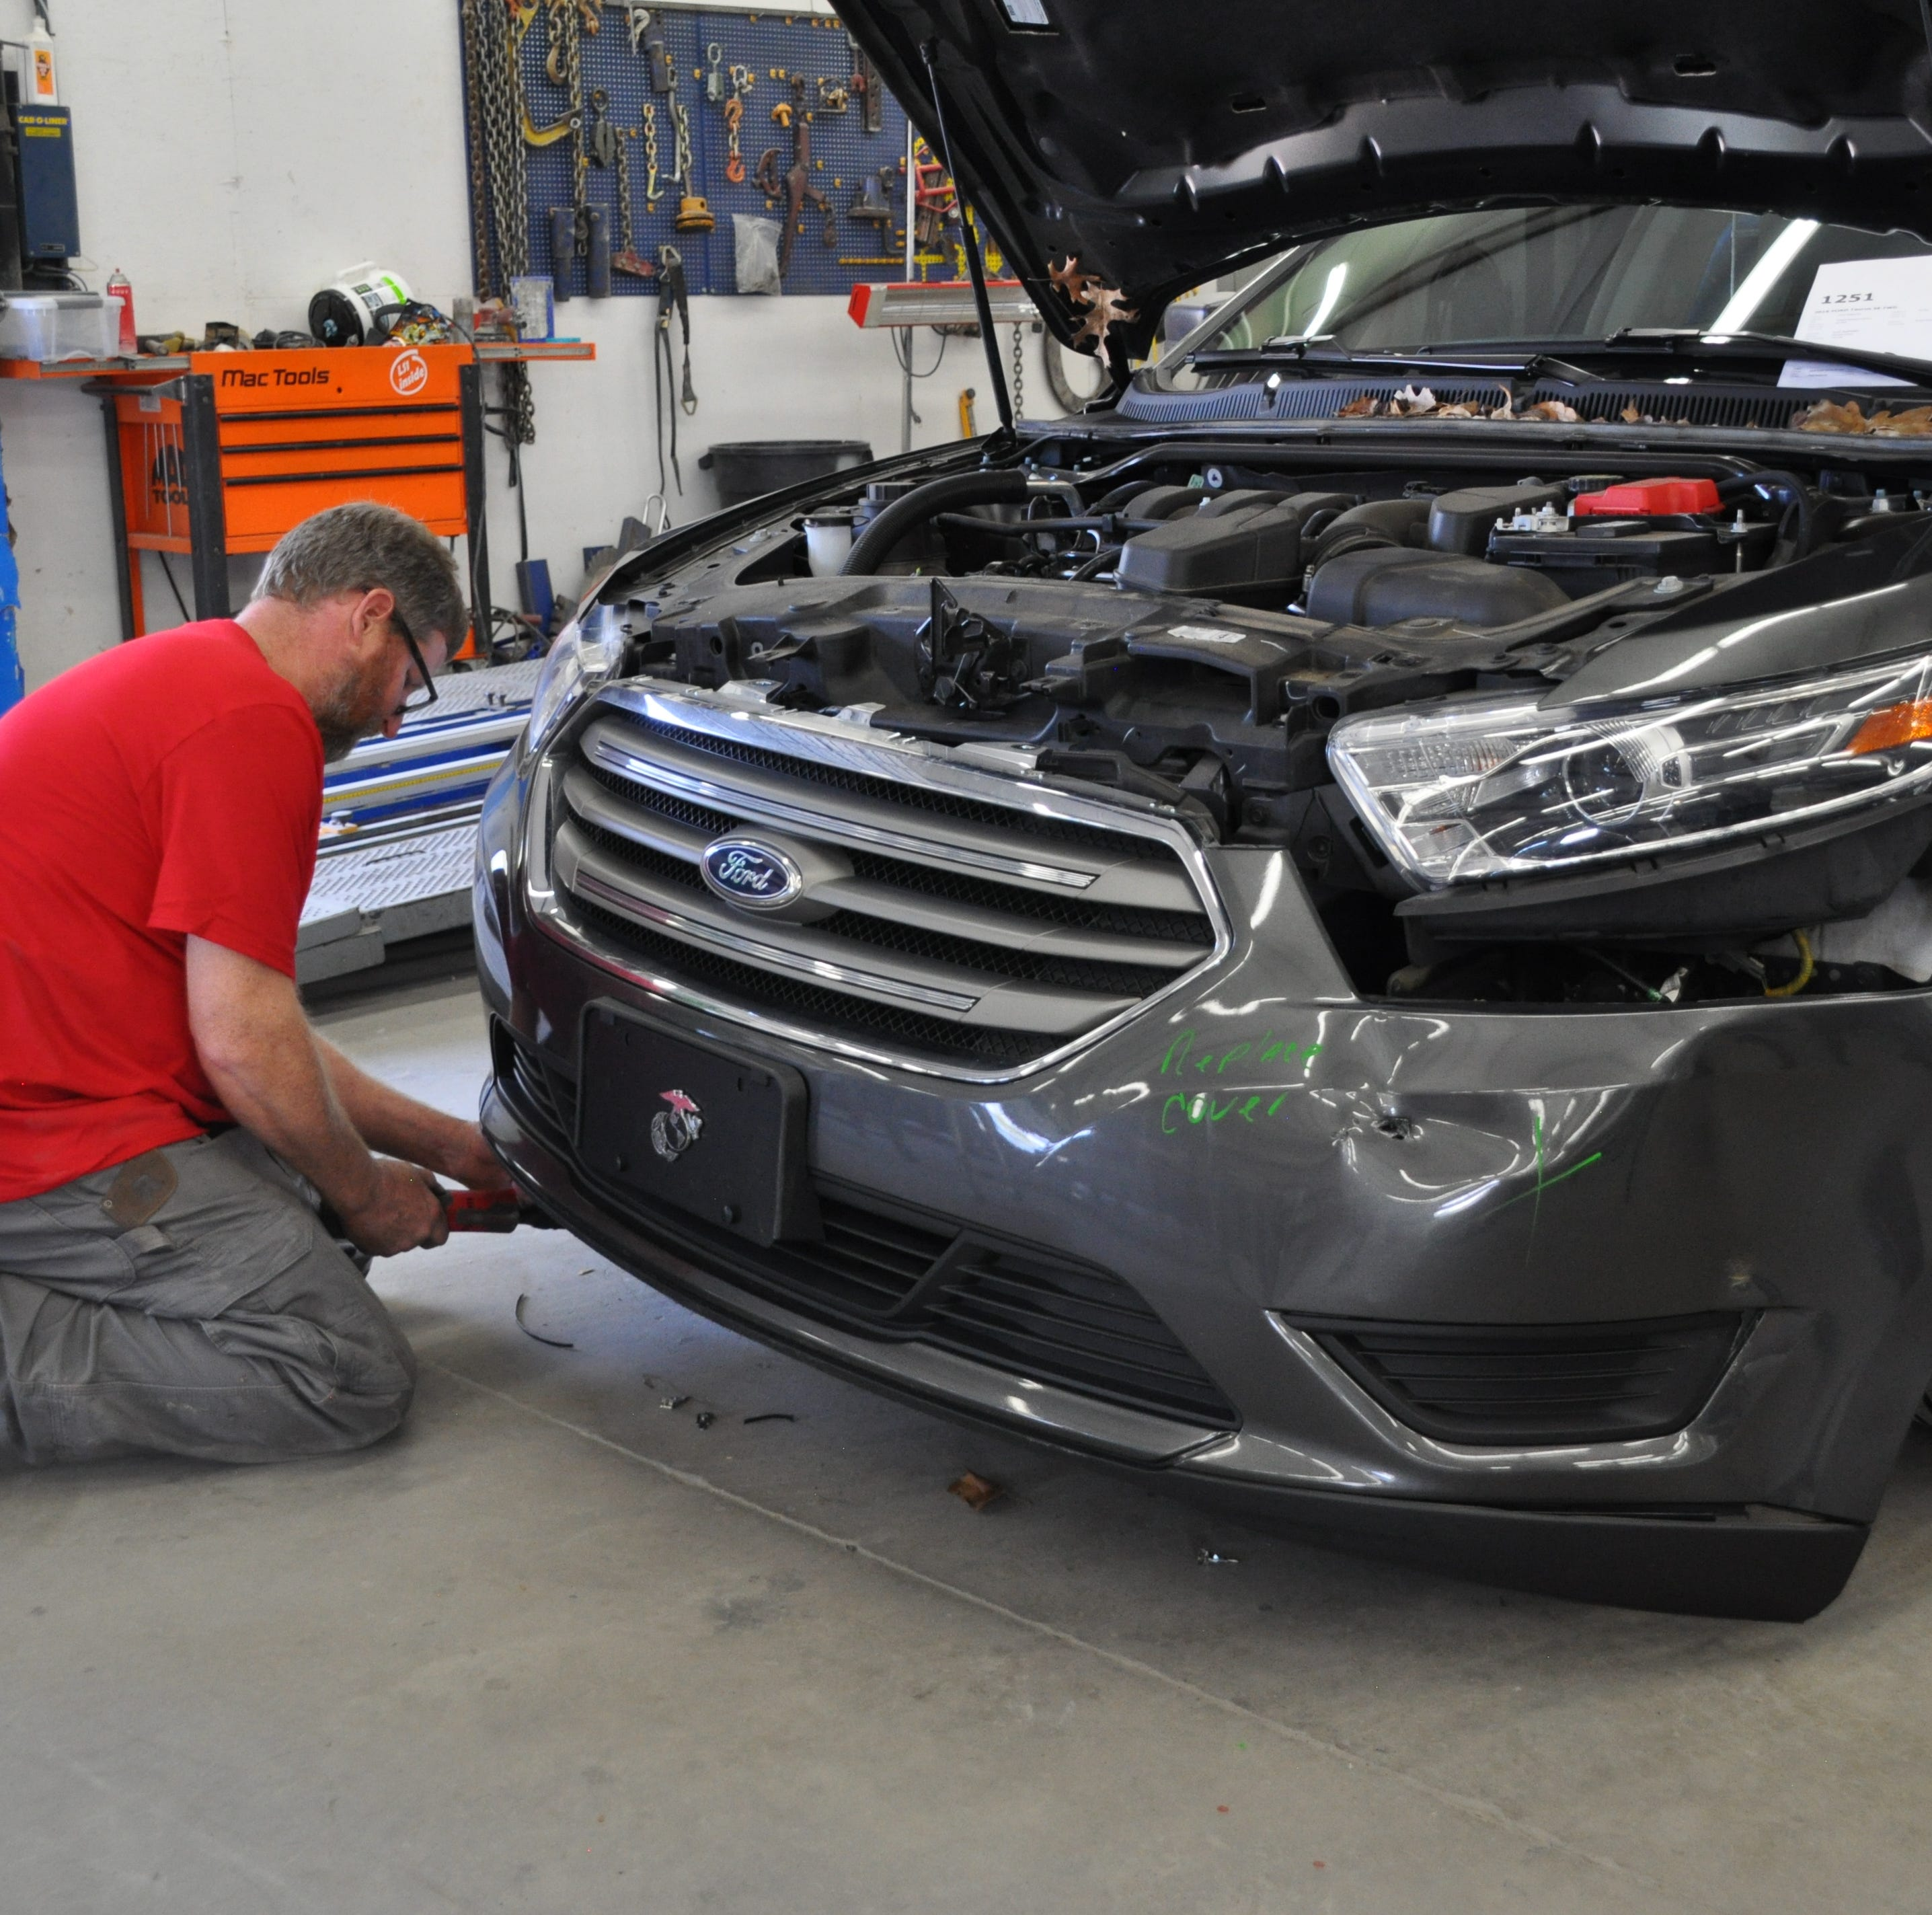 $34K to repair a car? High-tech features mean higher repair bills